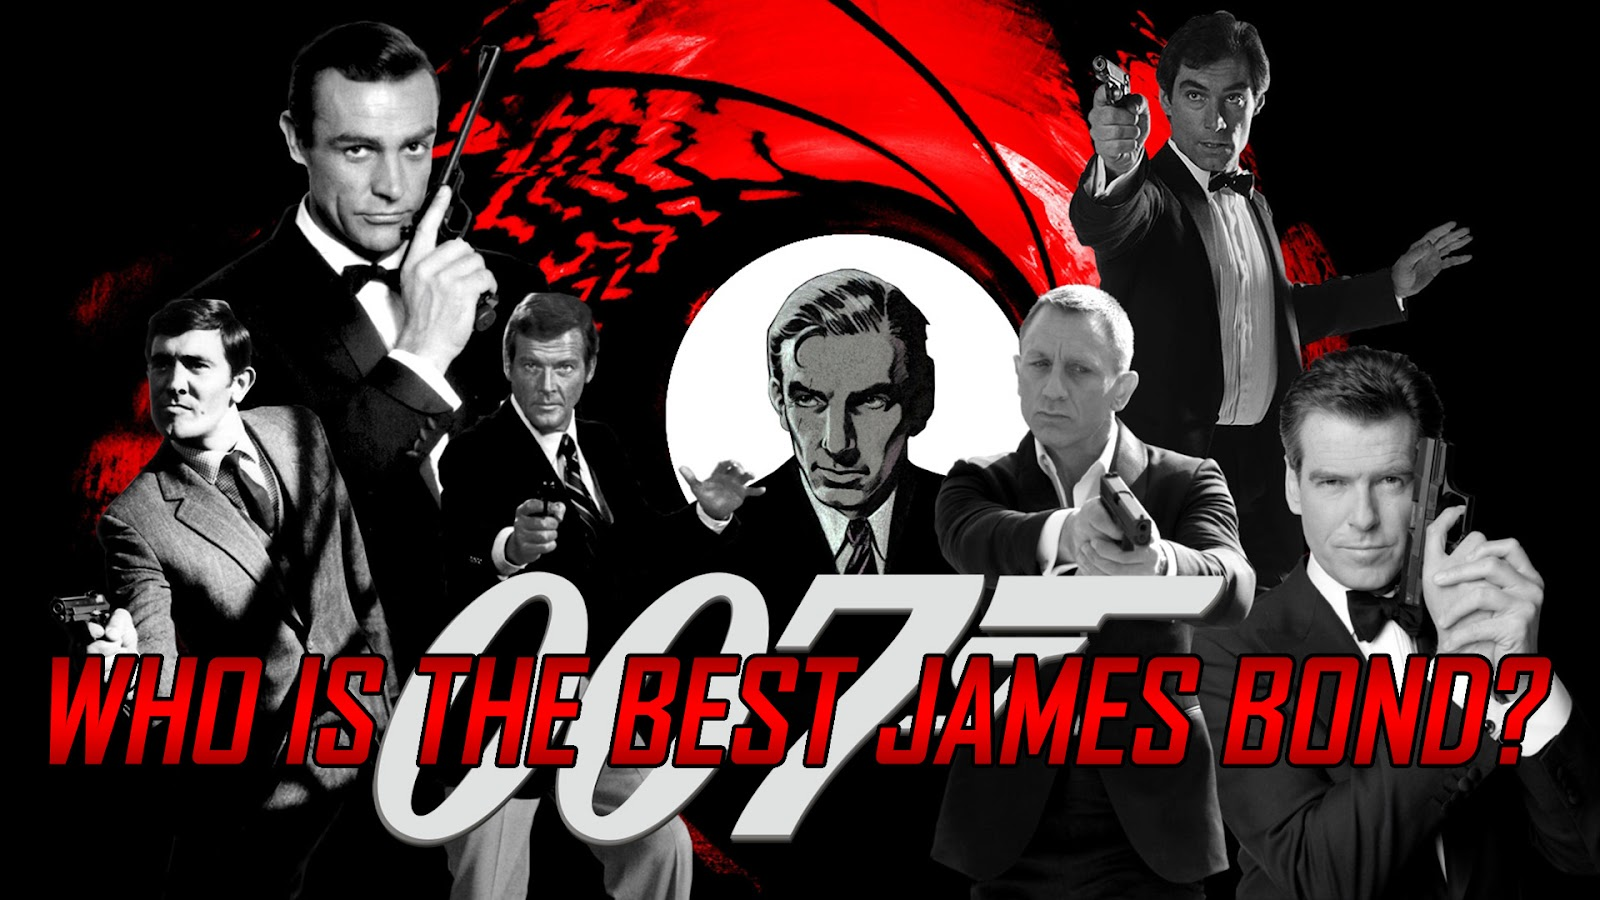 Who is the Best James Bond 007 actor?